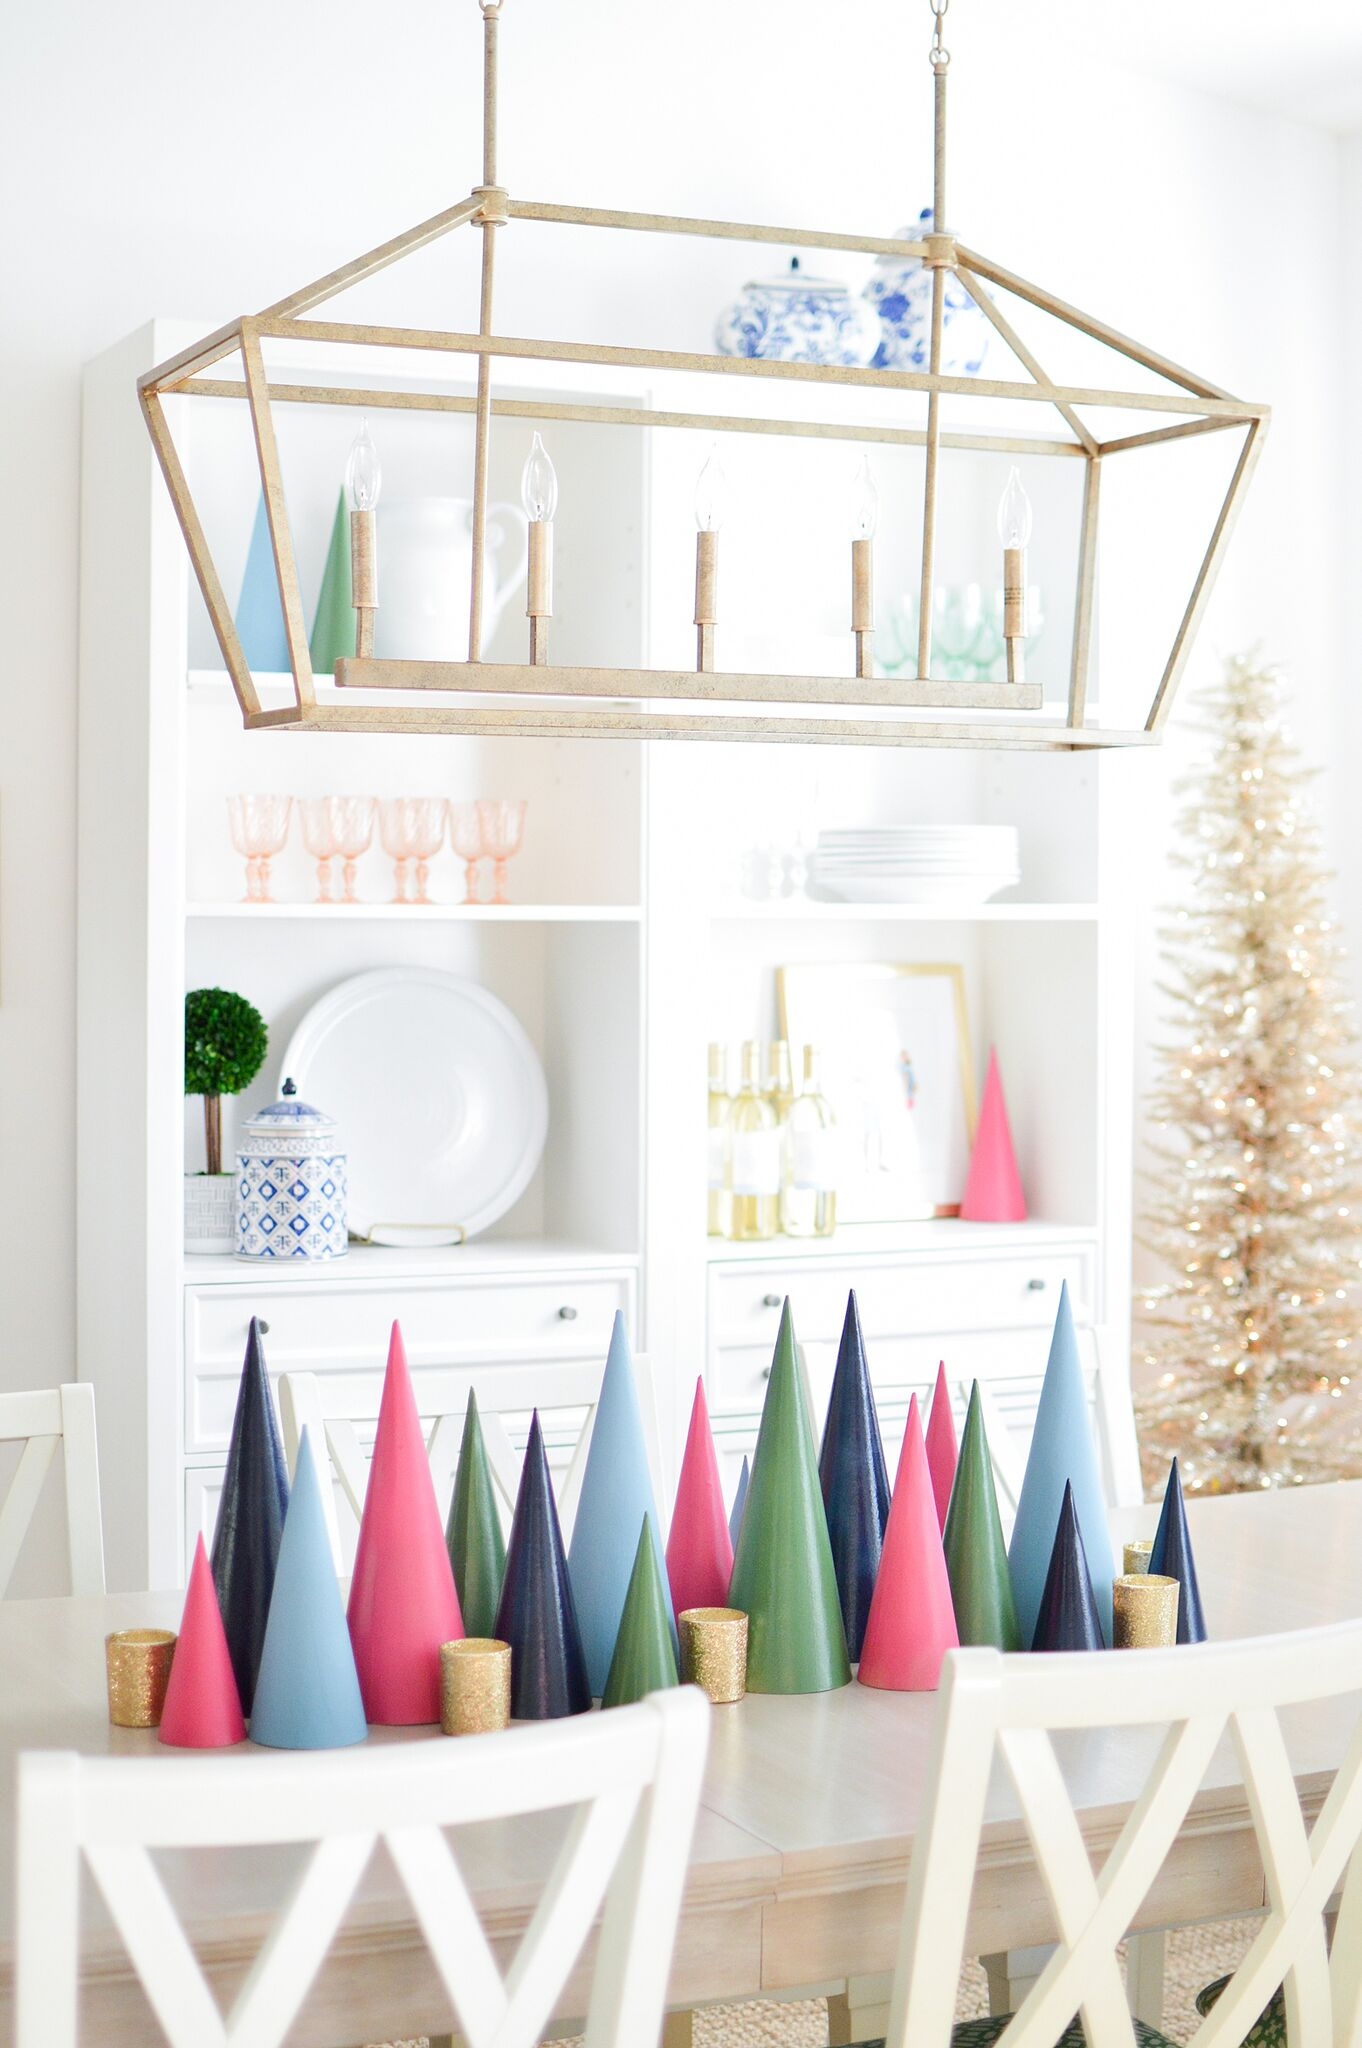 Christmas Eclectic Home Tour - love this modern take on Christmas trees